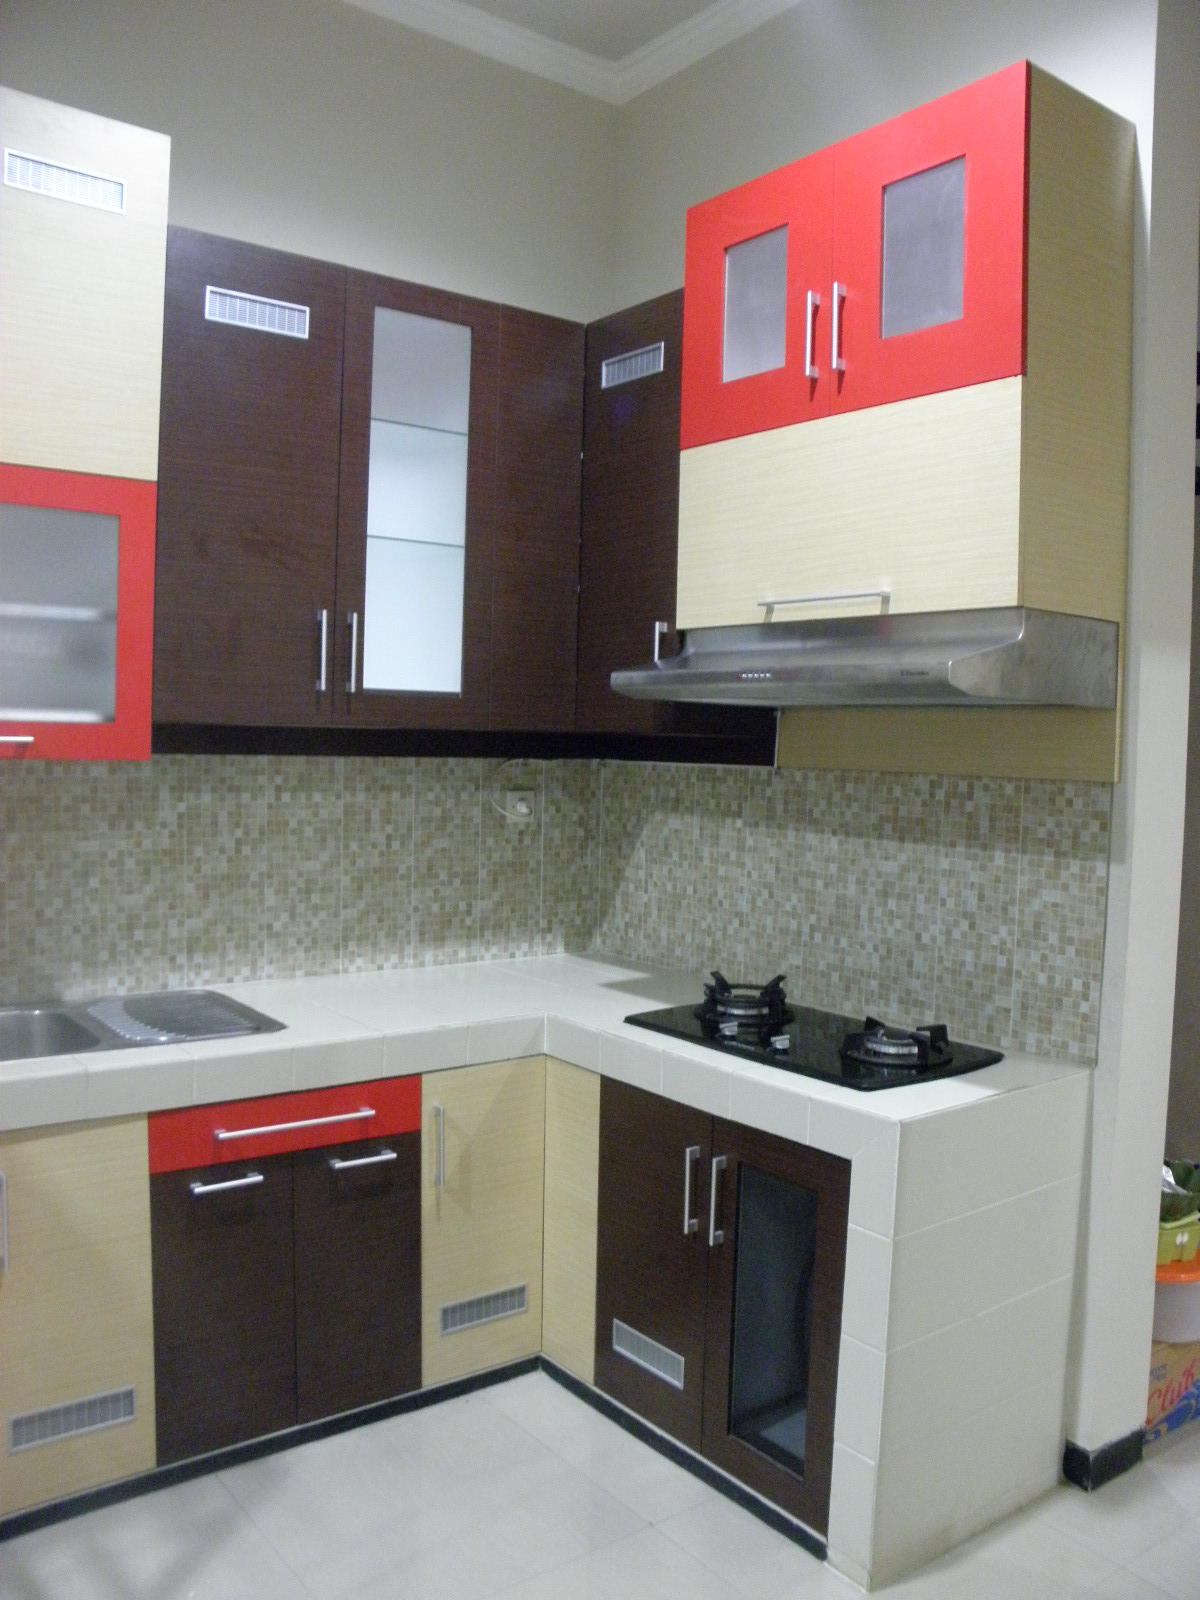 Jual Mini Bar Minimalis Kitchen Set Murah Surabaya | Kitchen Set Minimalis